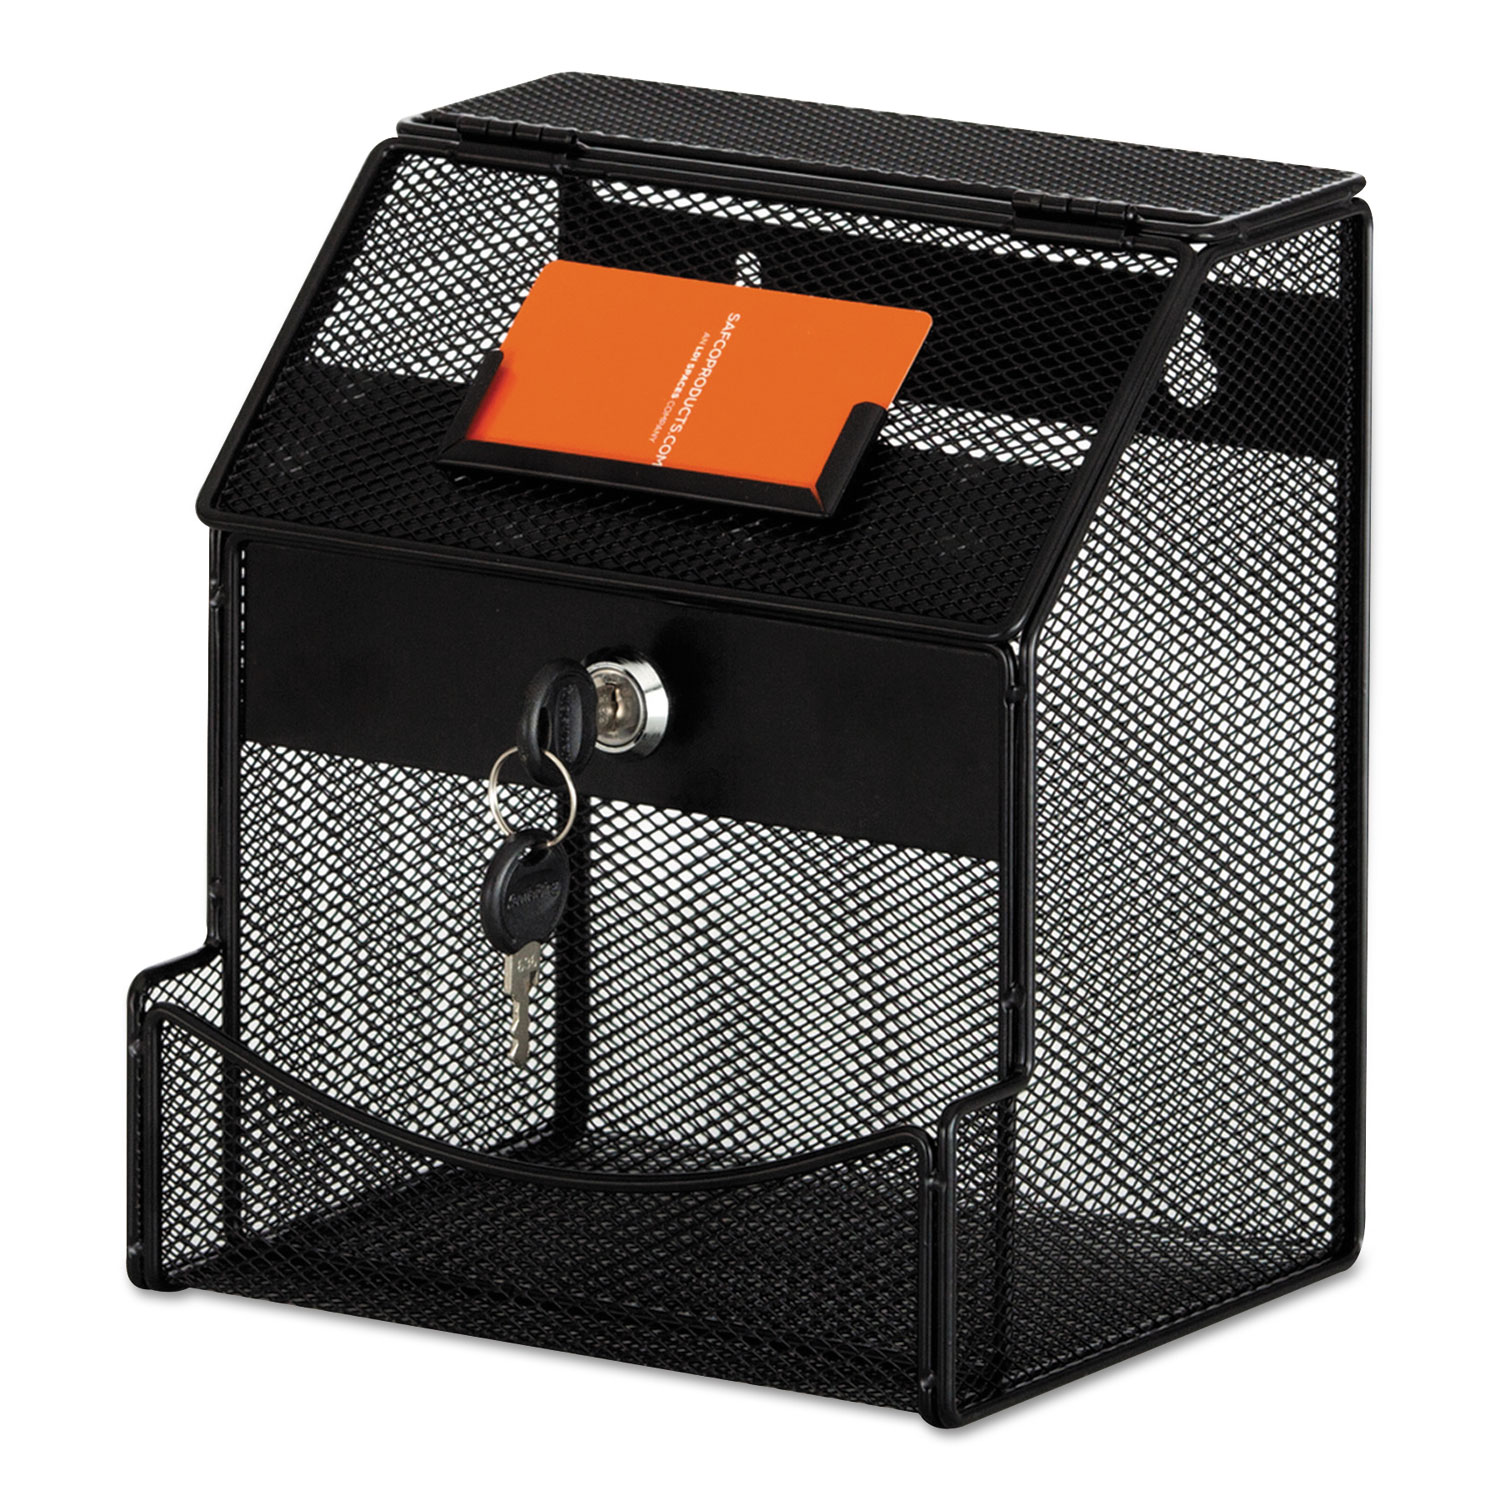 Onyx Mesh Collection Box, 7 1/4 x 8 1/2 x 6, Steel, Black